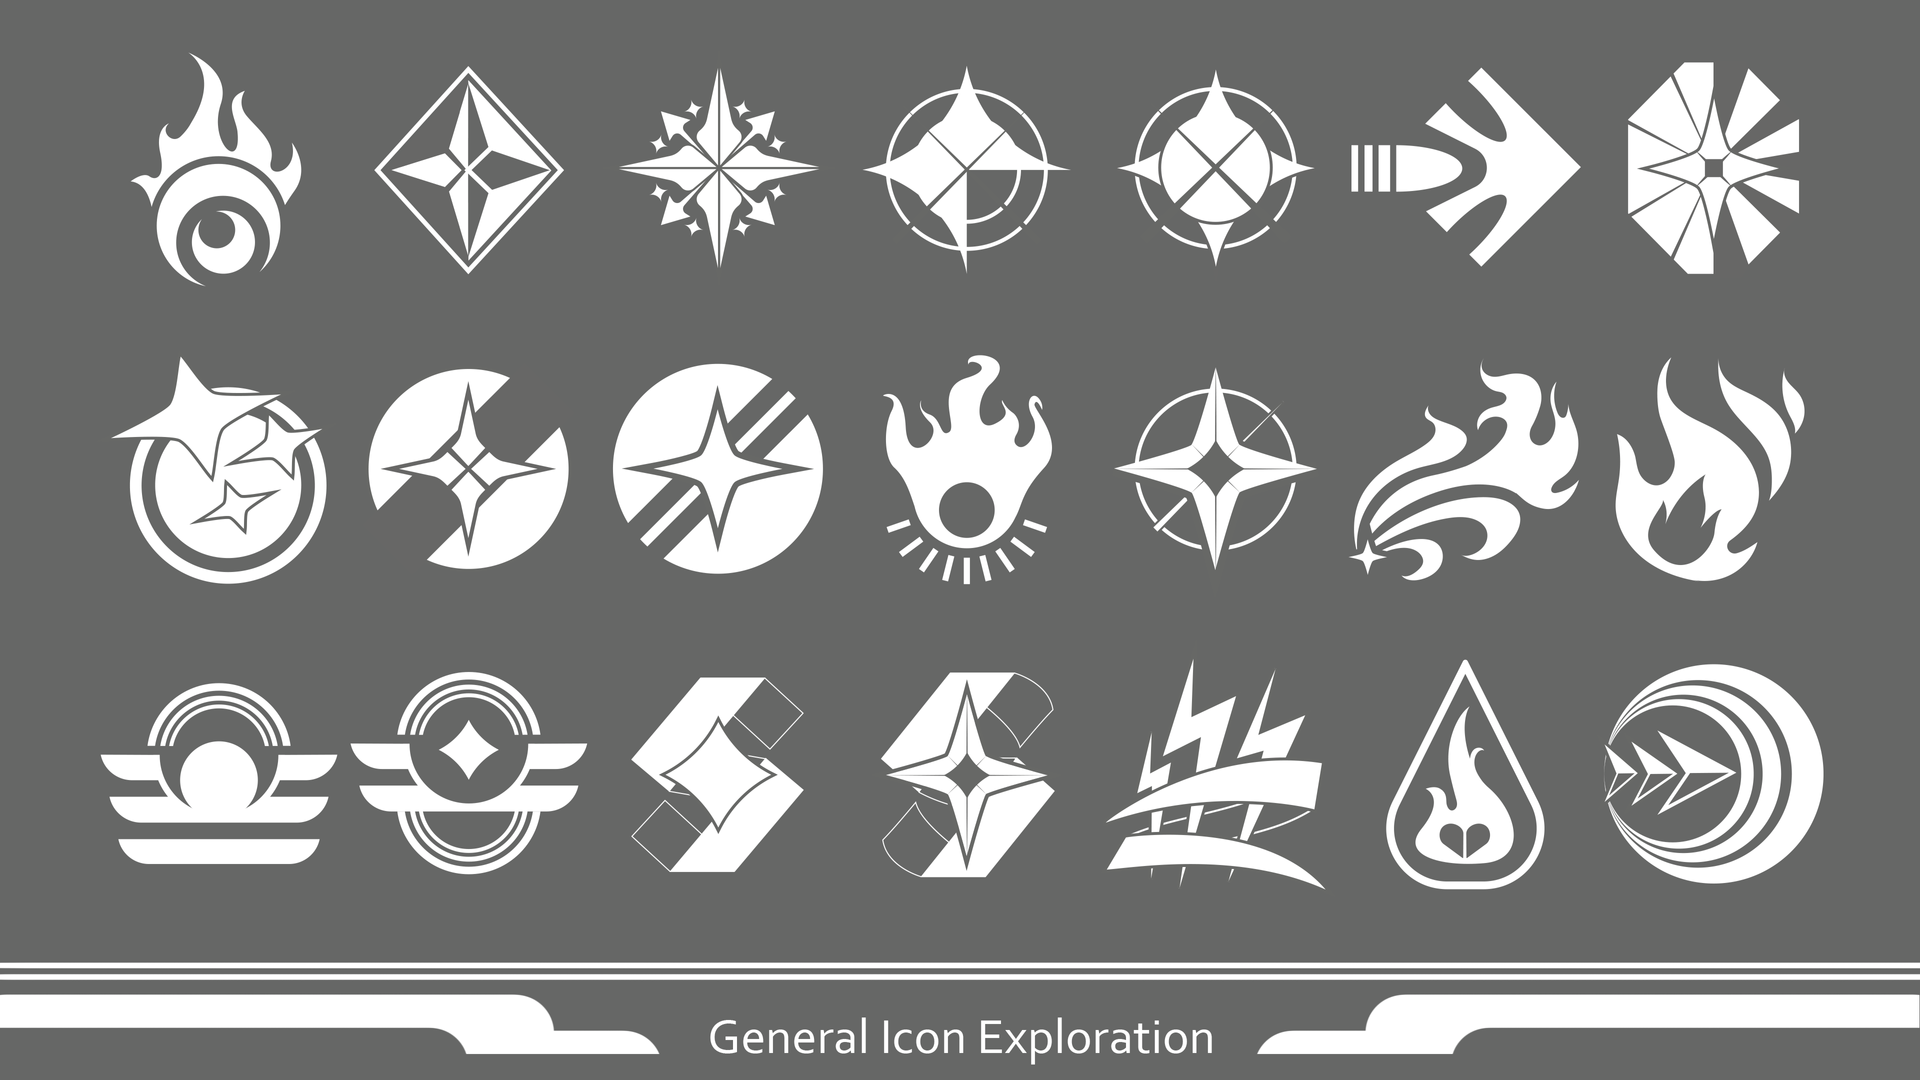 General Icon Exploration